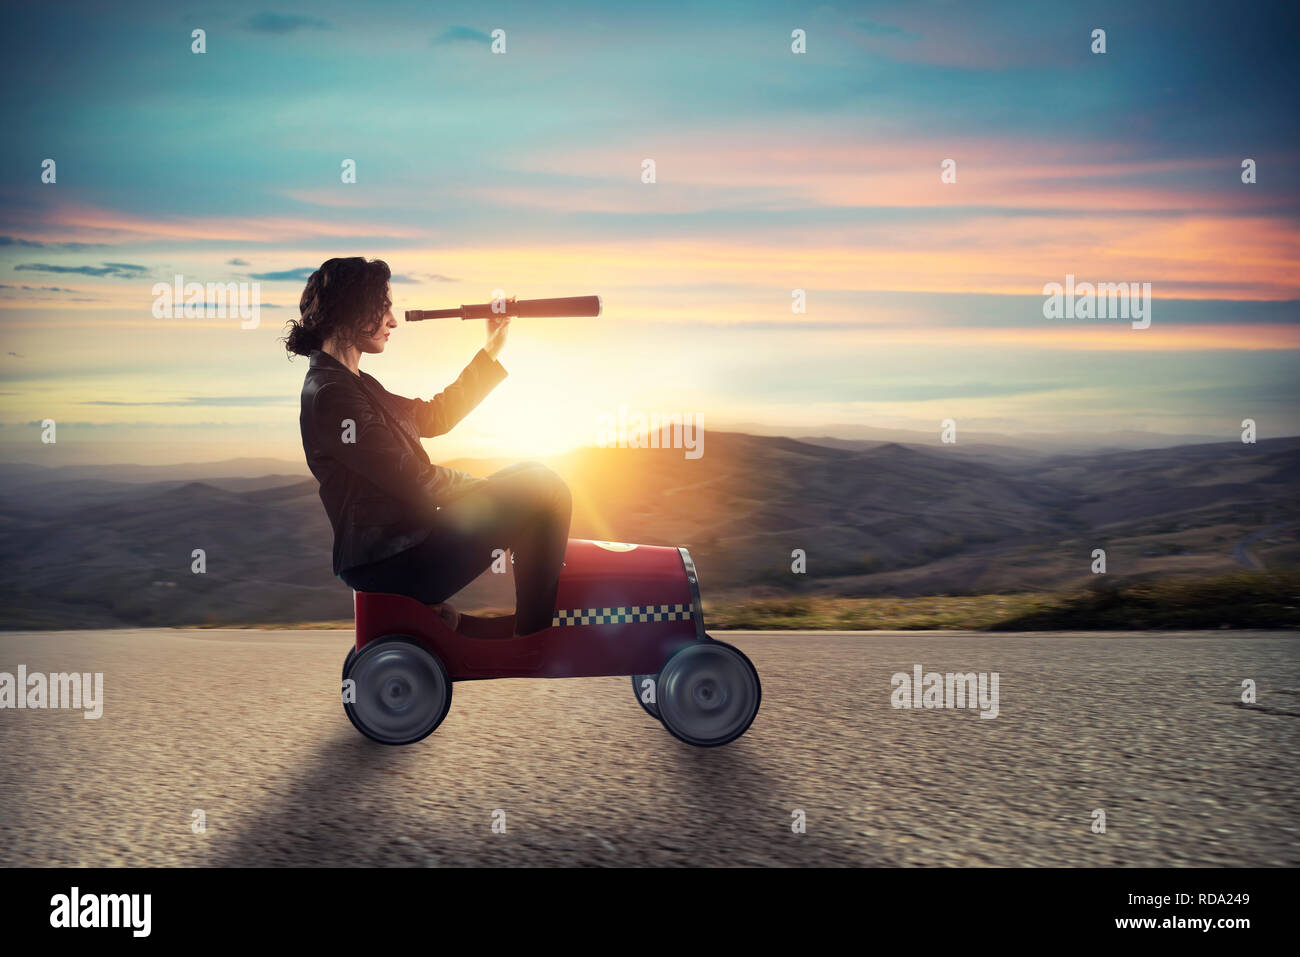 Businesswoman with telescope on a car looks for new business opportunity - Stock Image